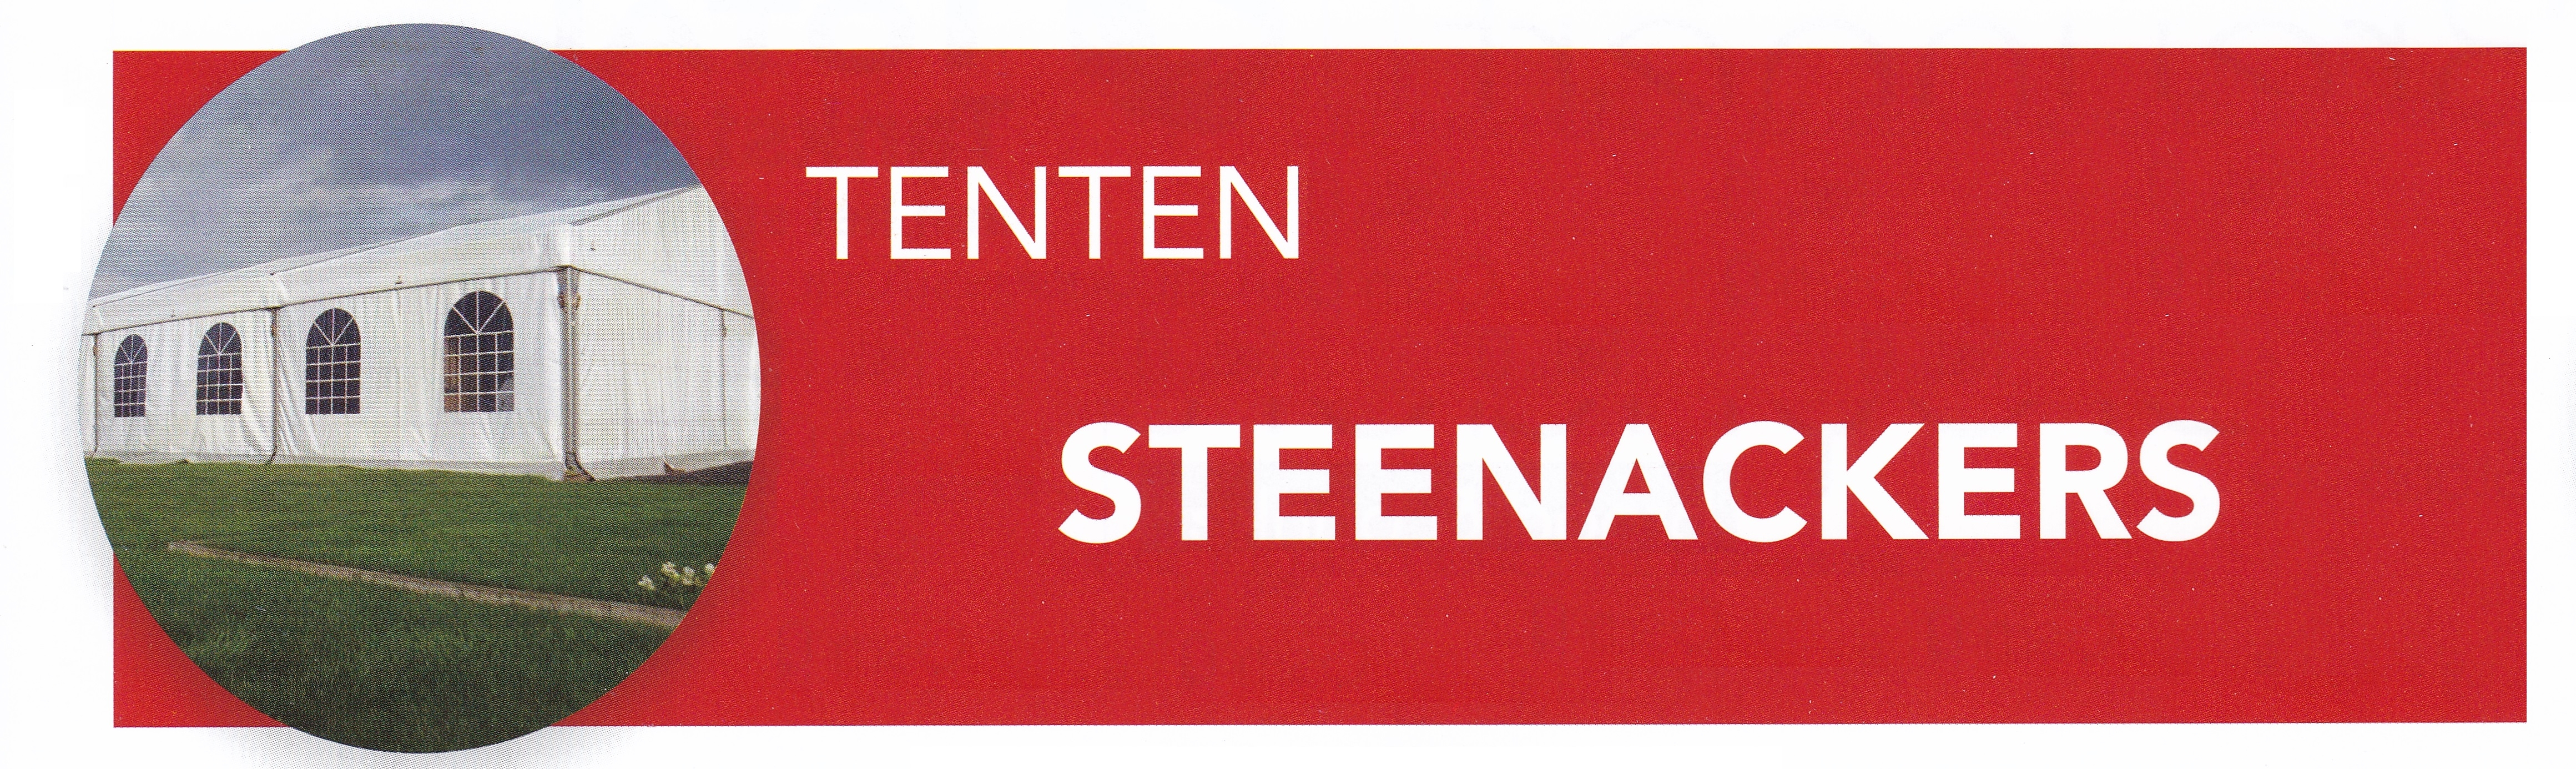 TENTEN STEENACKERS